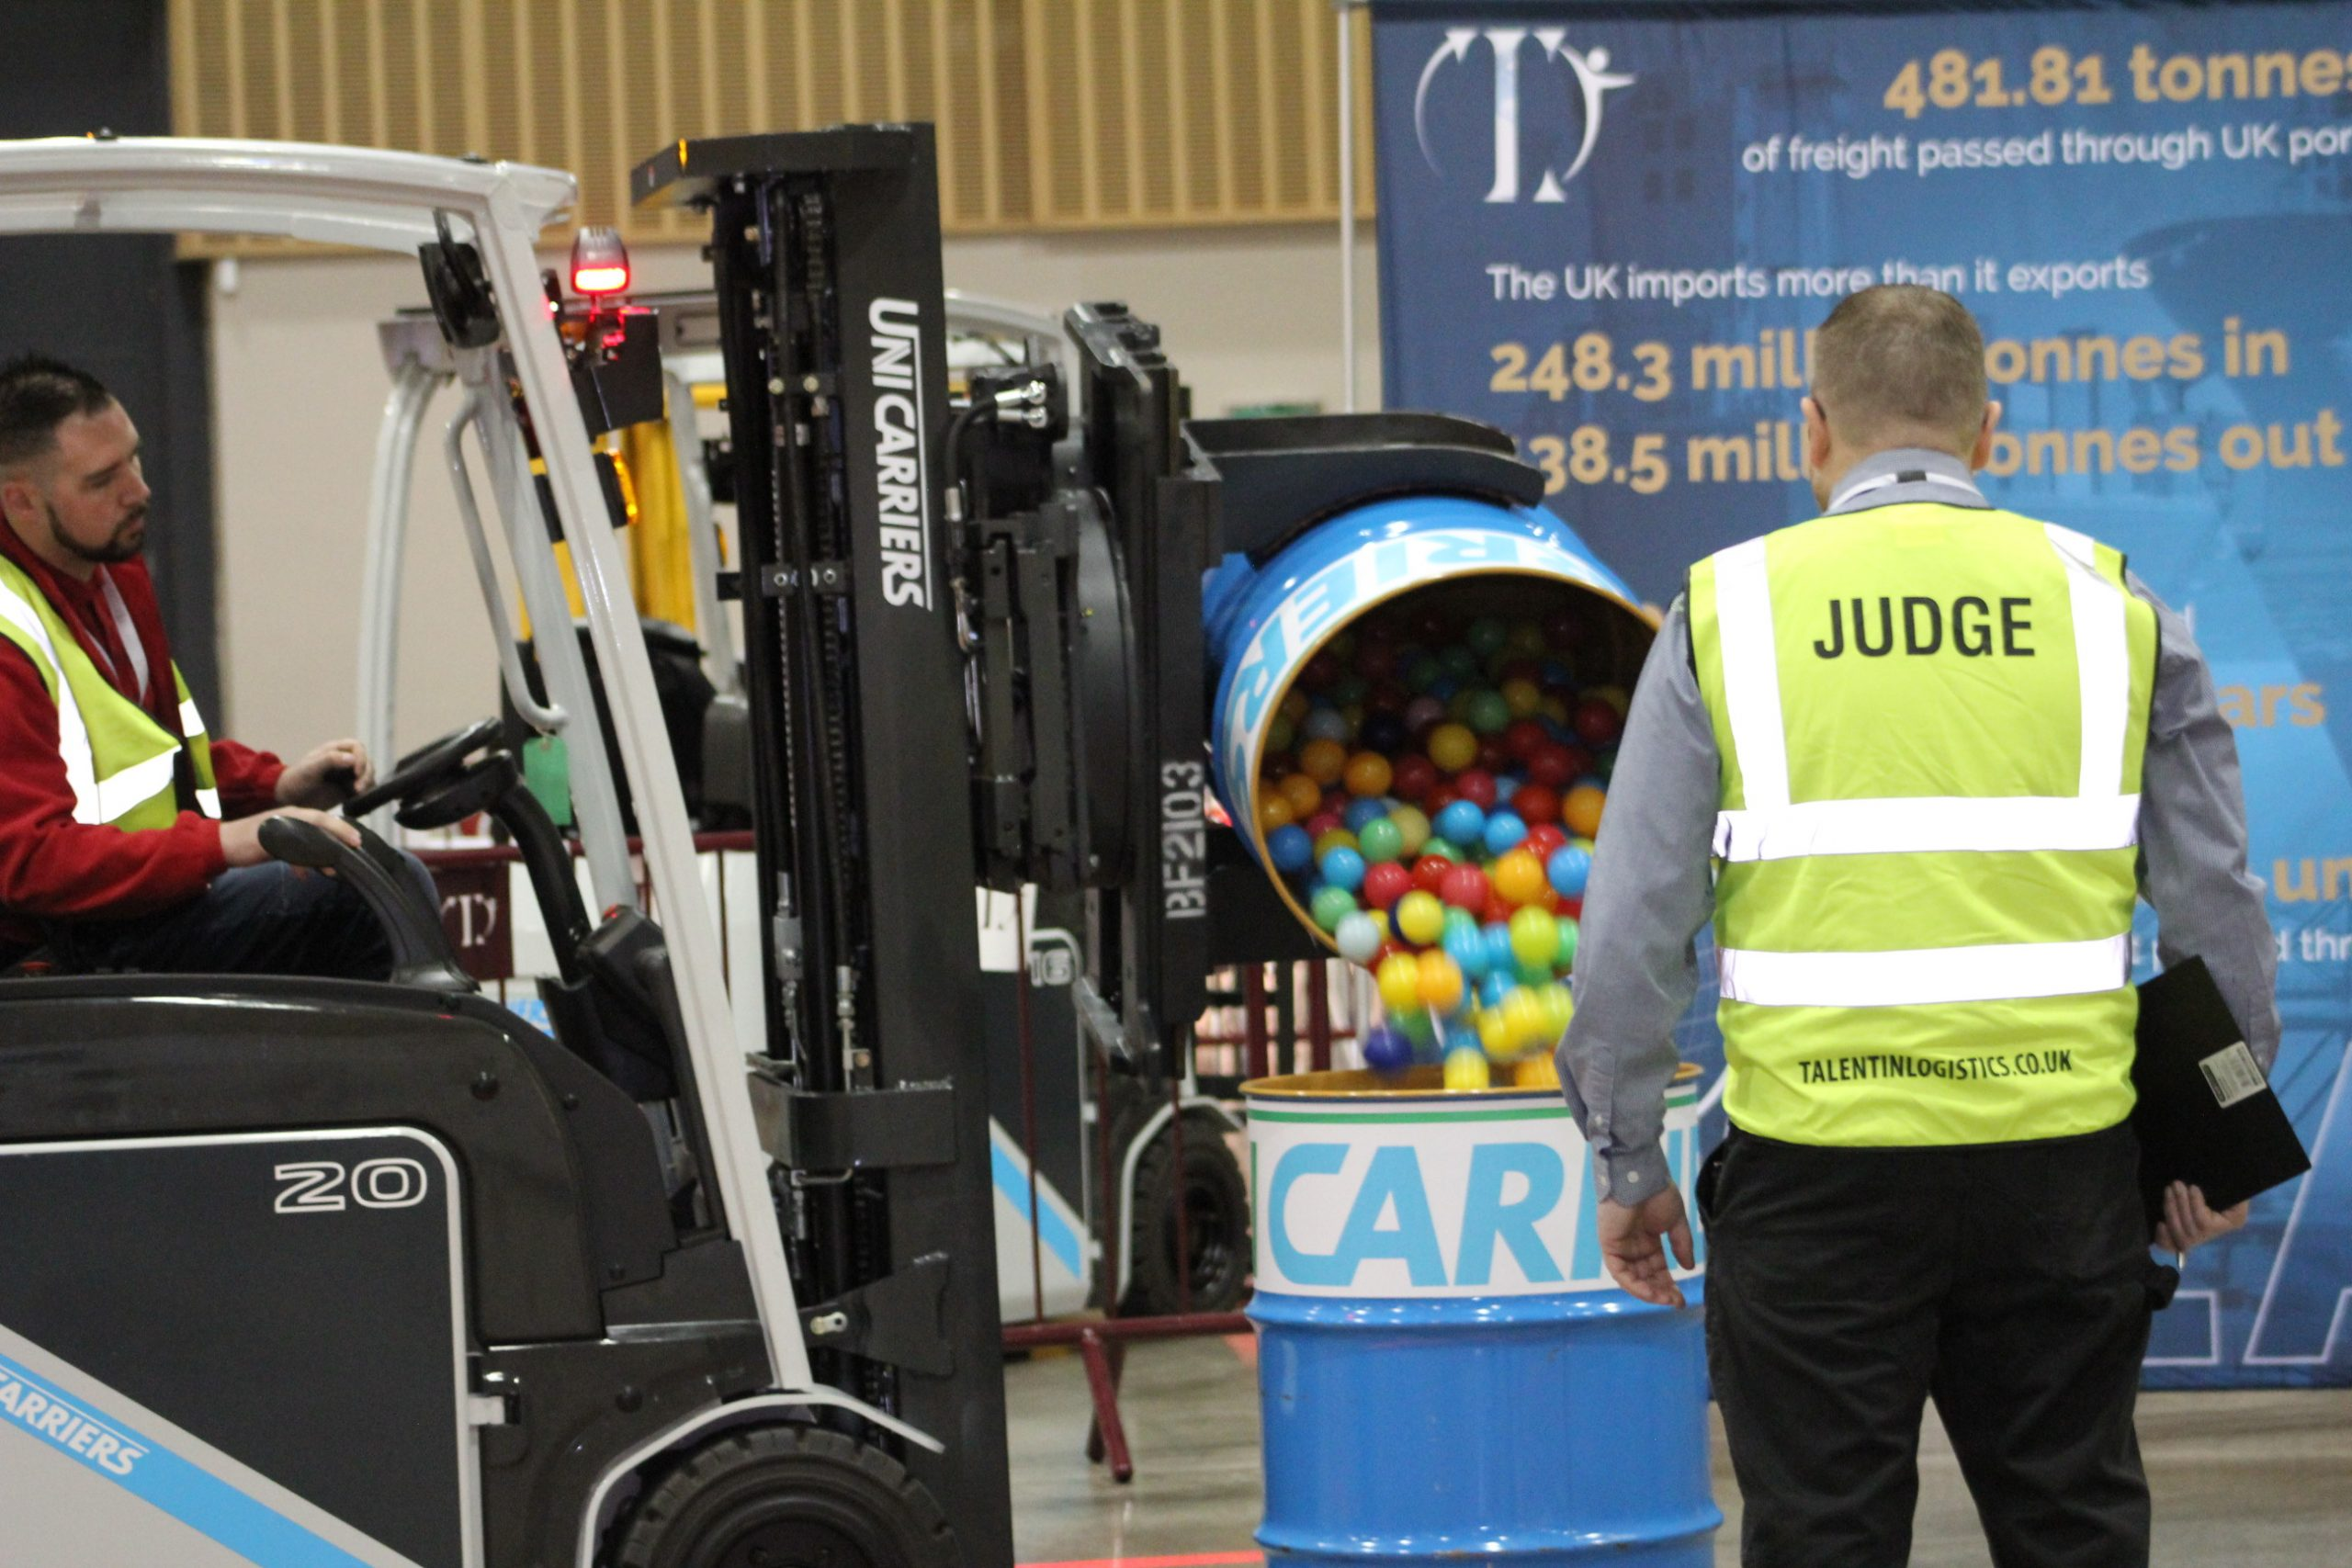 RTITB partners recognised in Talent in Logistics Forklift Operator competition